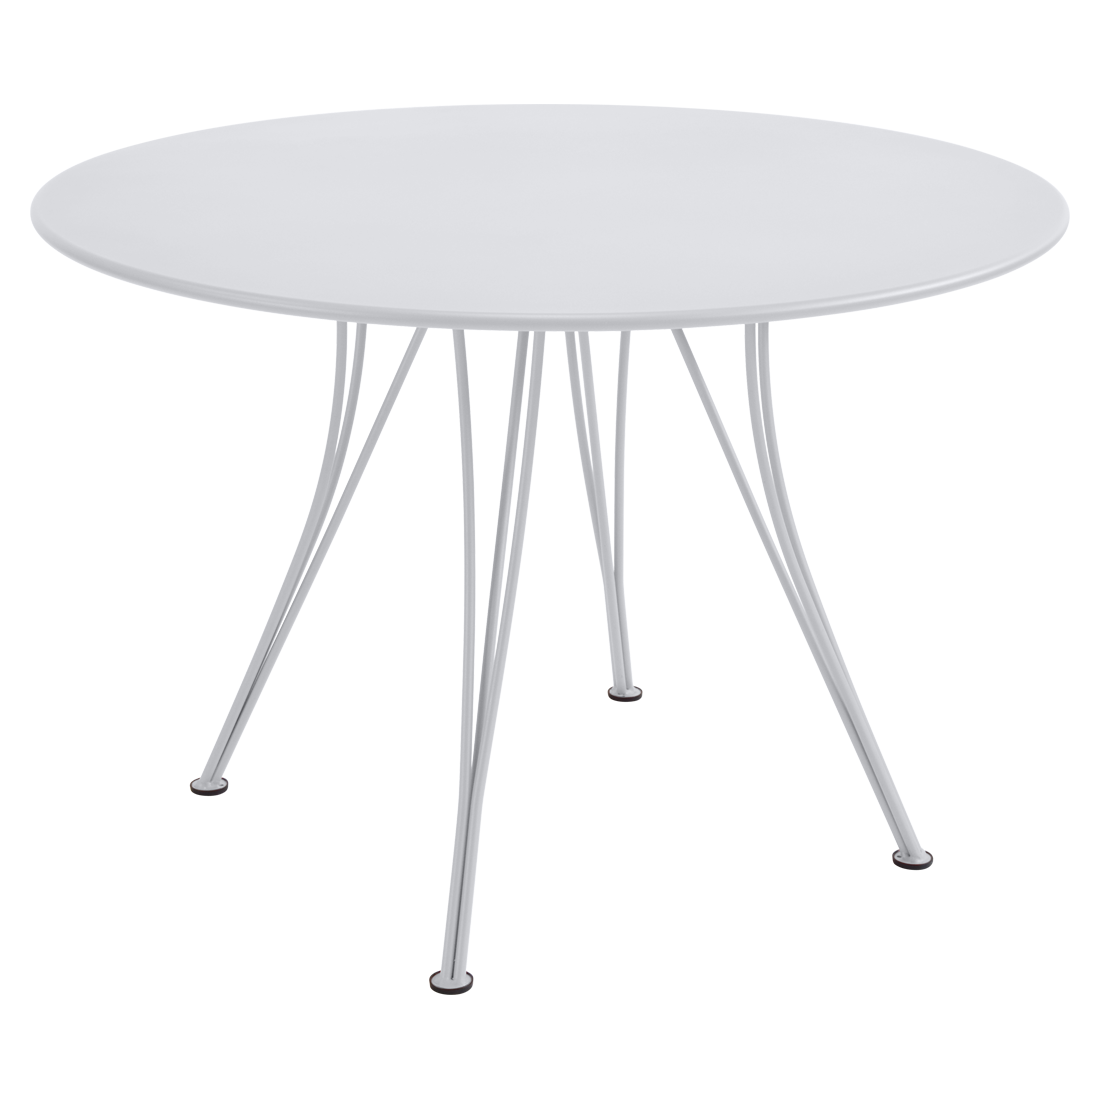 table de jardin, table metal, table ronde, table 5 personnes, table blanche